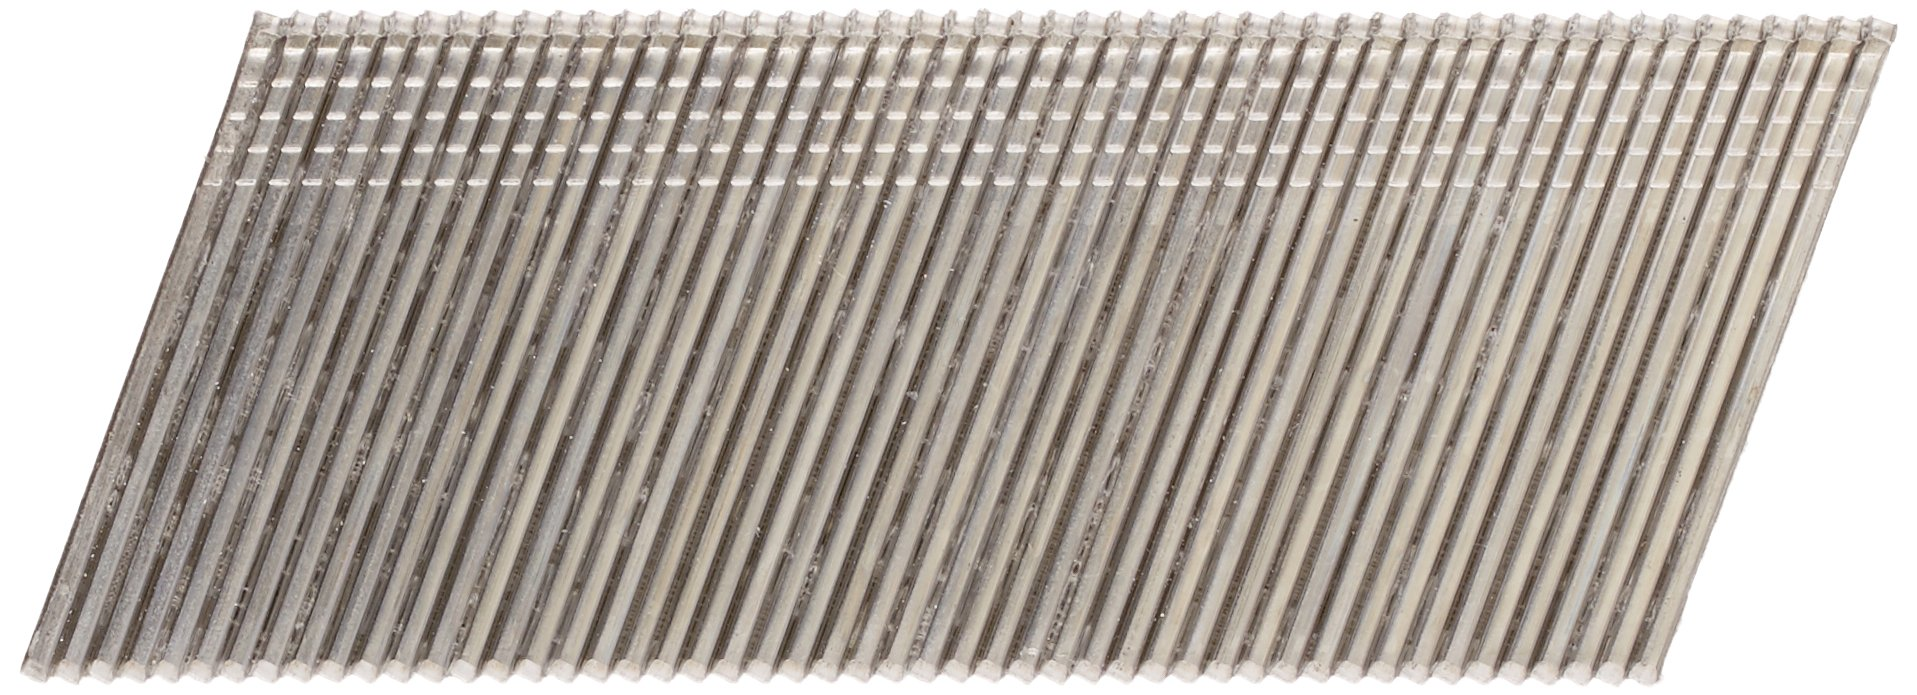 Simpson Swan Secure T16N150PFB 16-Gauge 316 Stainless Steel 1-1/2-Inch Angle Finish Nails for Paslode and DeWalt Tools, 500 Per Box